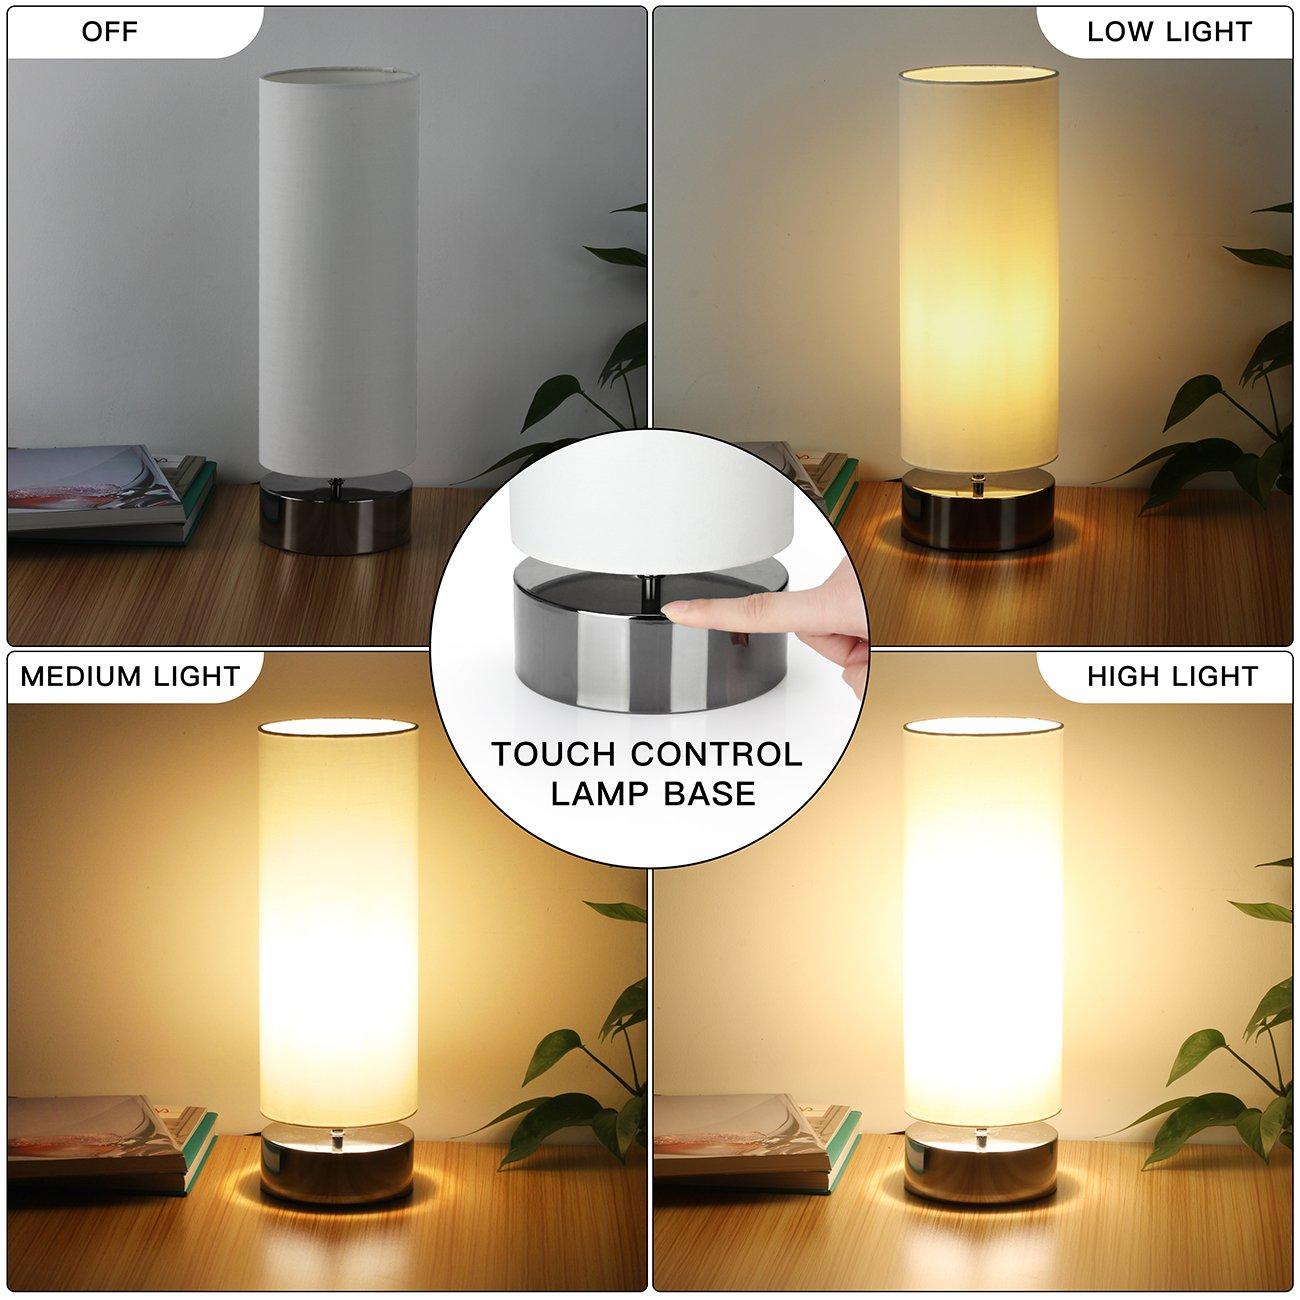 Touch Control Table Lamp Bedside Minimalist Desk Lamp Modern Accent Lamp Dimmable Touch Light with Cylinder Lamp Shade Night Light Nightstand Lamp for Bedroom Living Room Kitchen, E26 Bulb Included by Seaside village (Image #3)